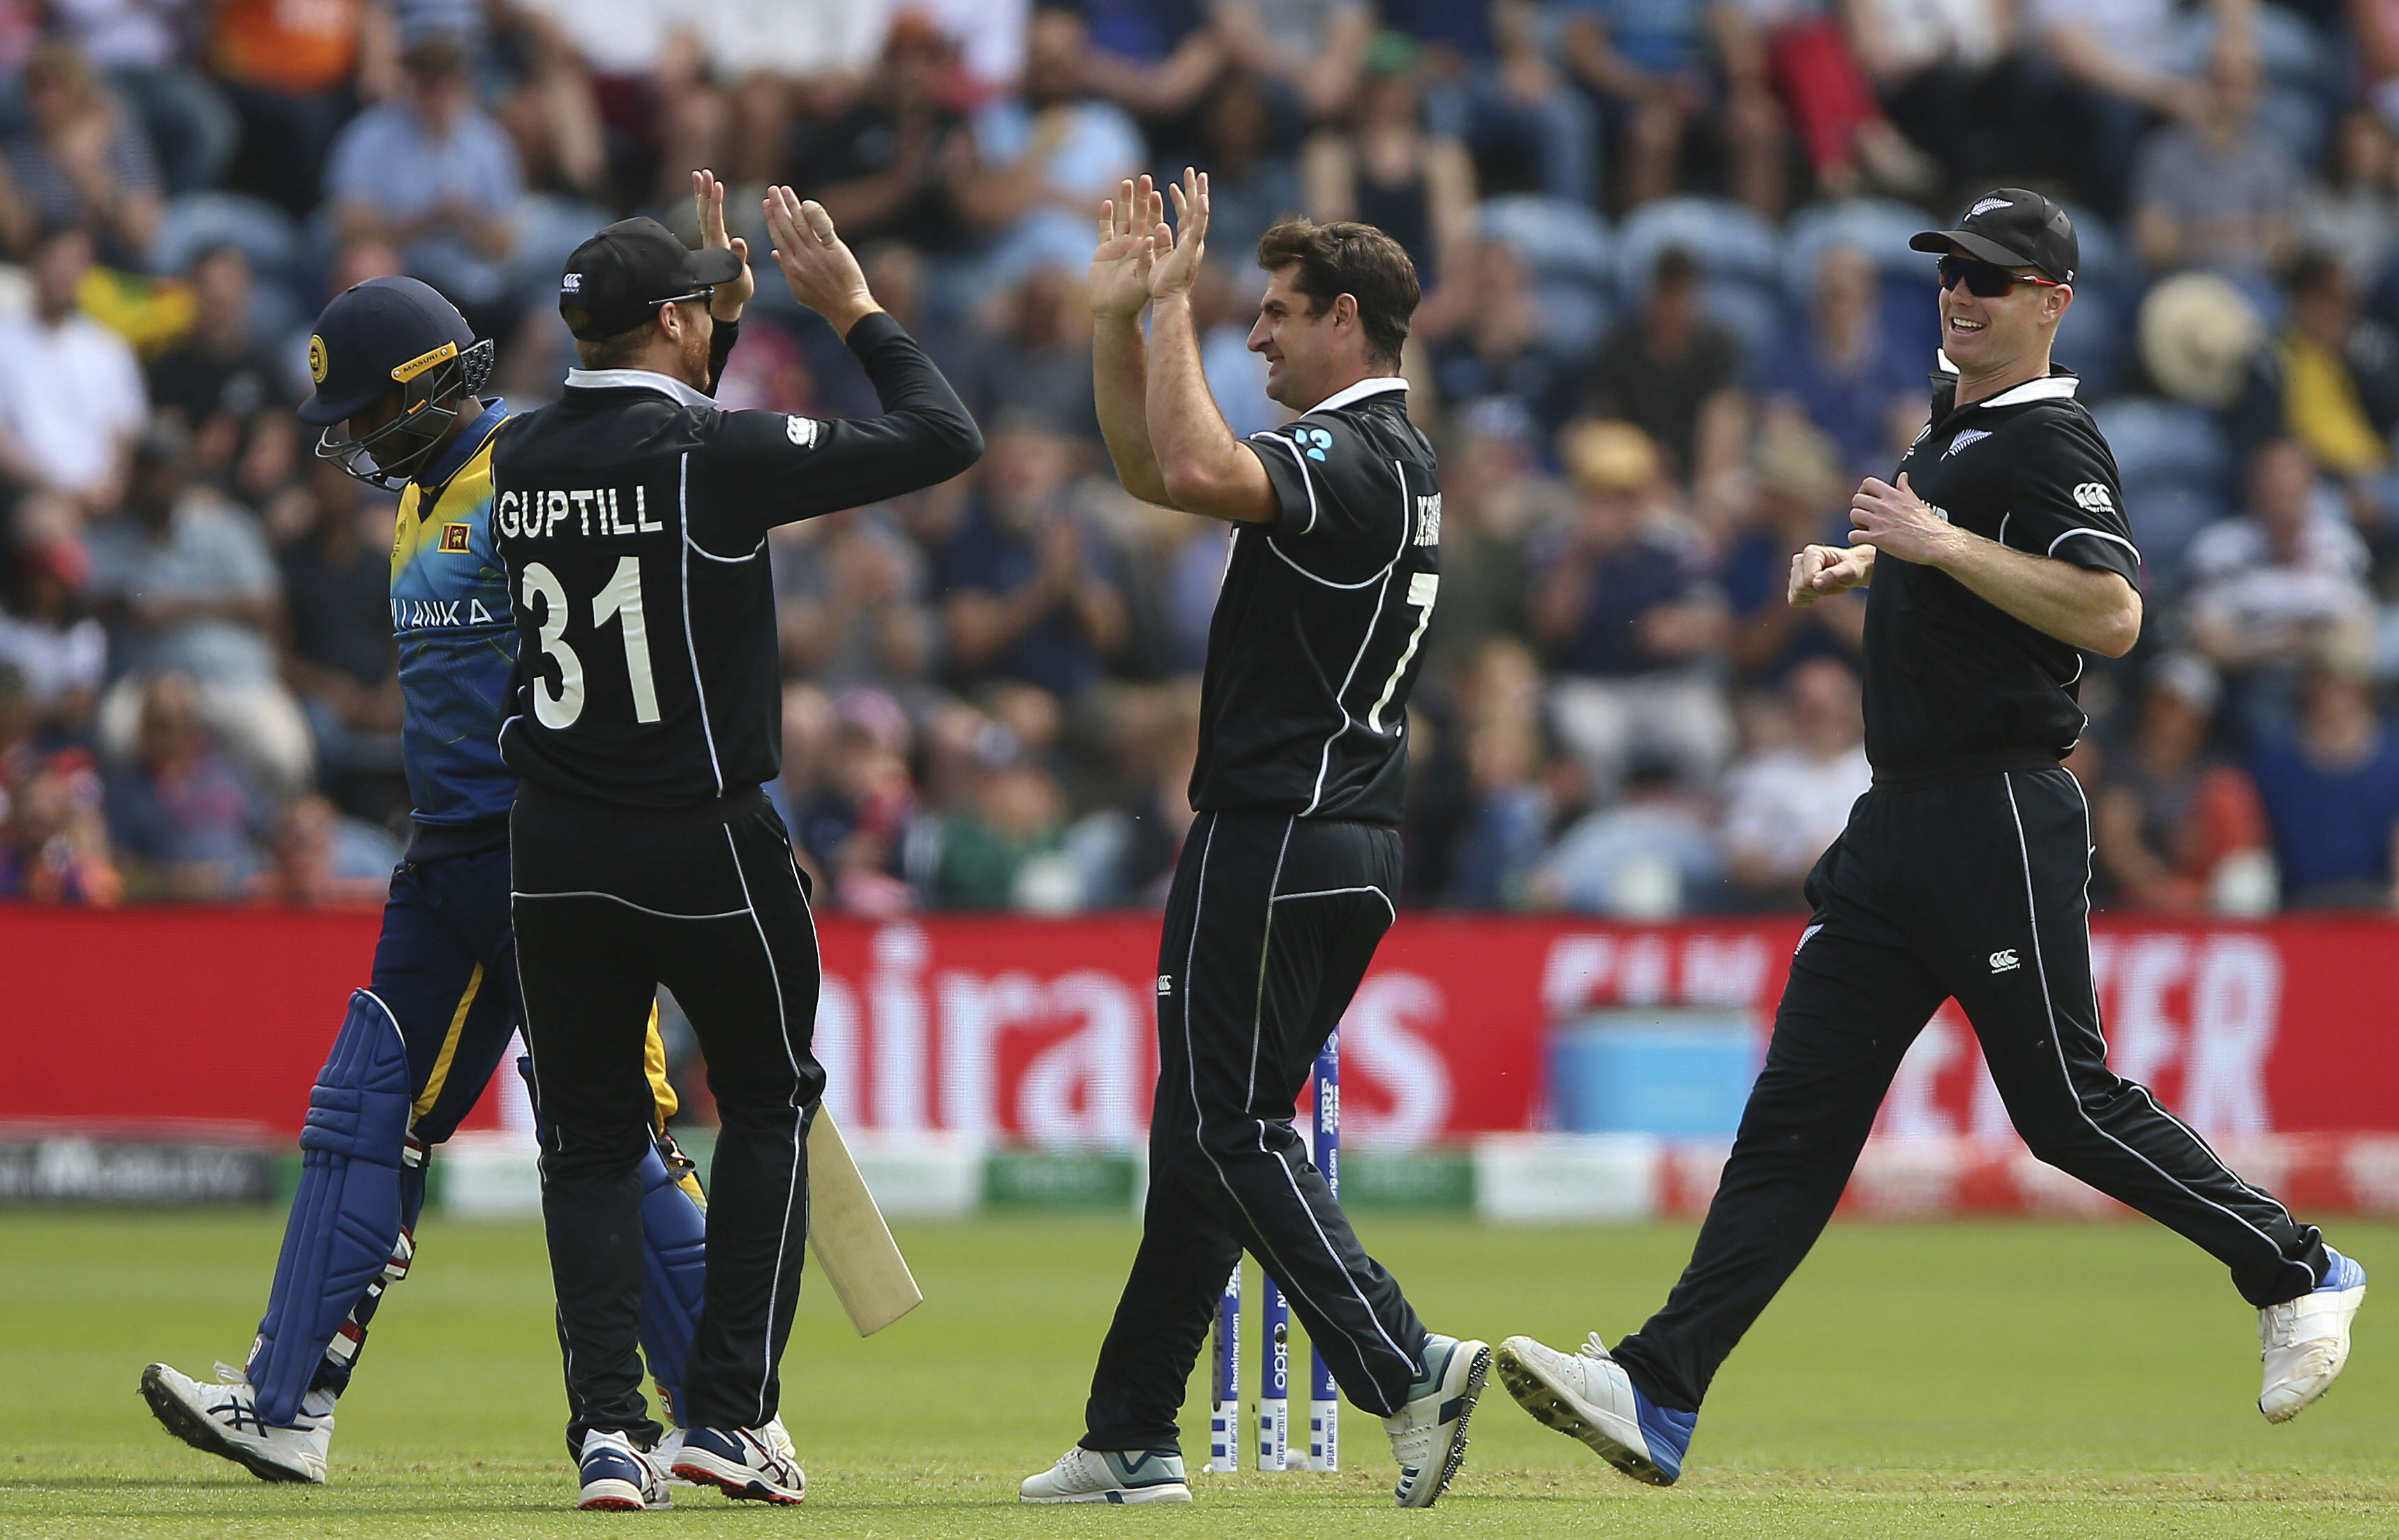 New Zealand's Colin de Grandhomme (centre) celebrates after taking the wicket of Sri Lanka's Angelo Mathews (left) in Cardiff, Wales, on June 1.